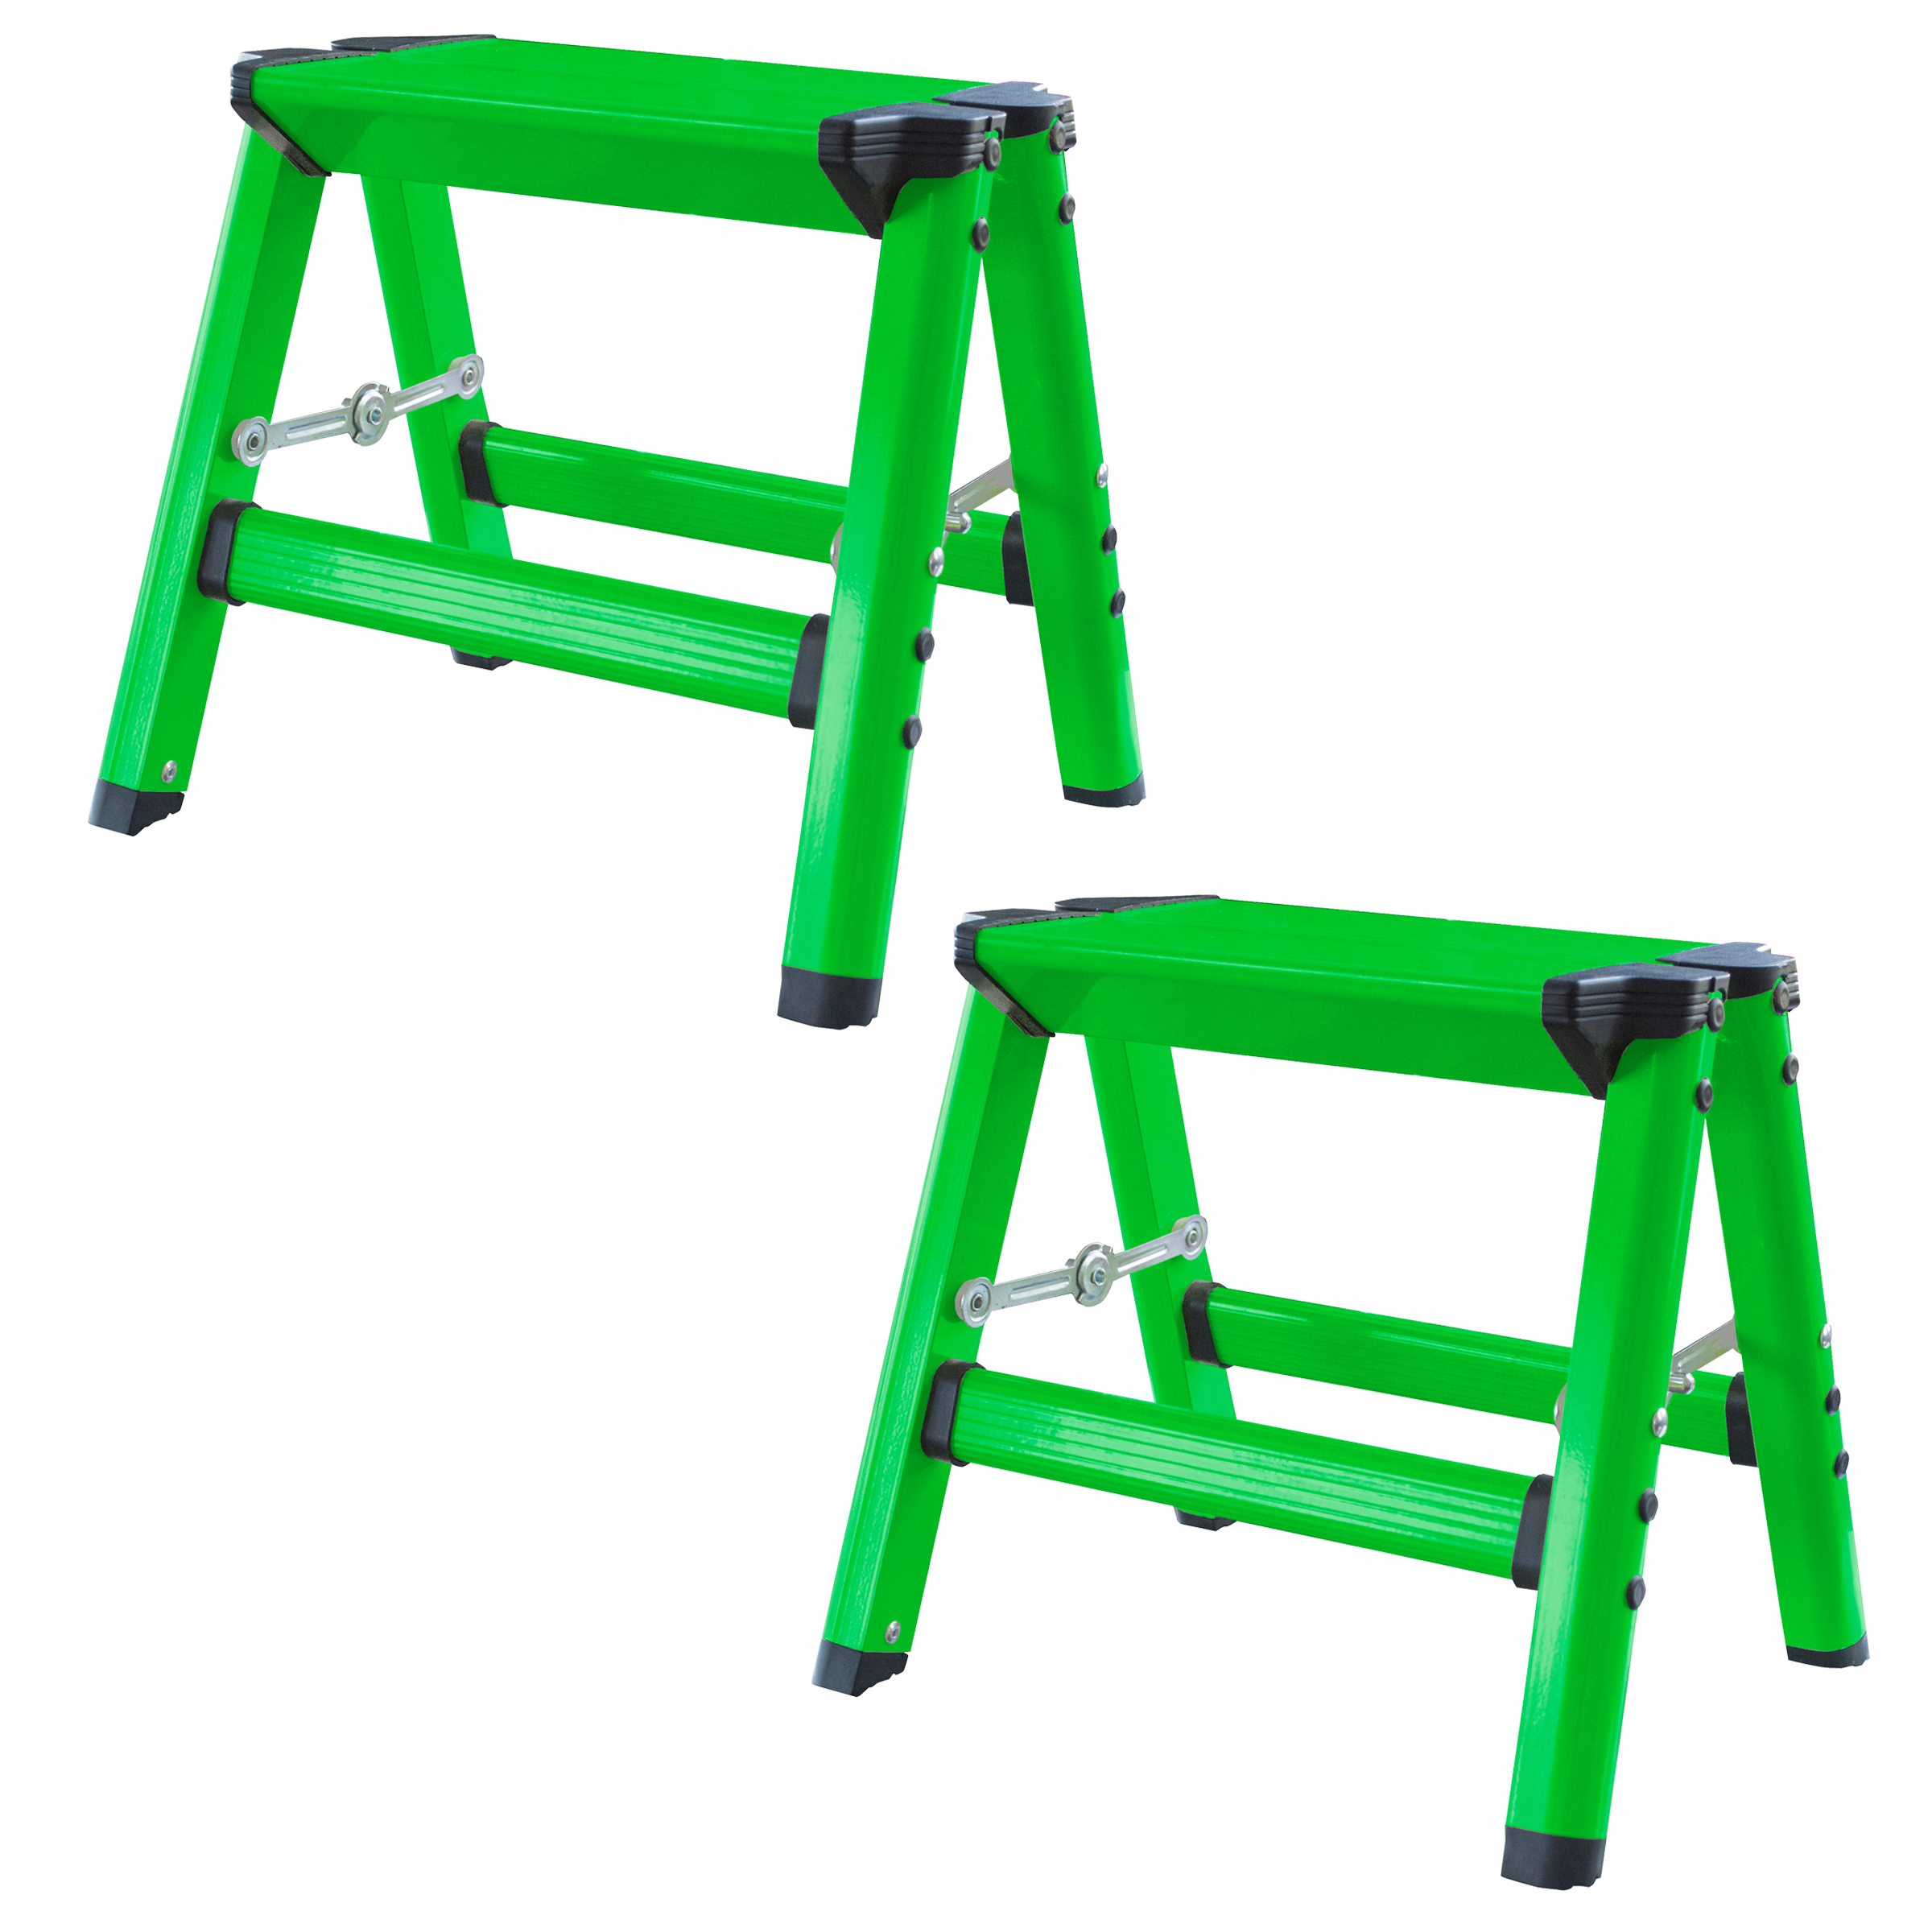 AmeriHome Lightweight Single Step Aluminum Step Stool 2 Piece Set - Bright Green